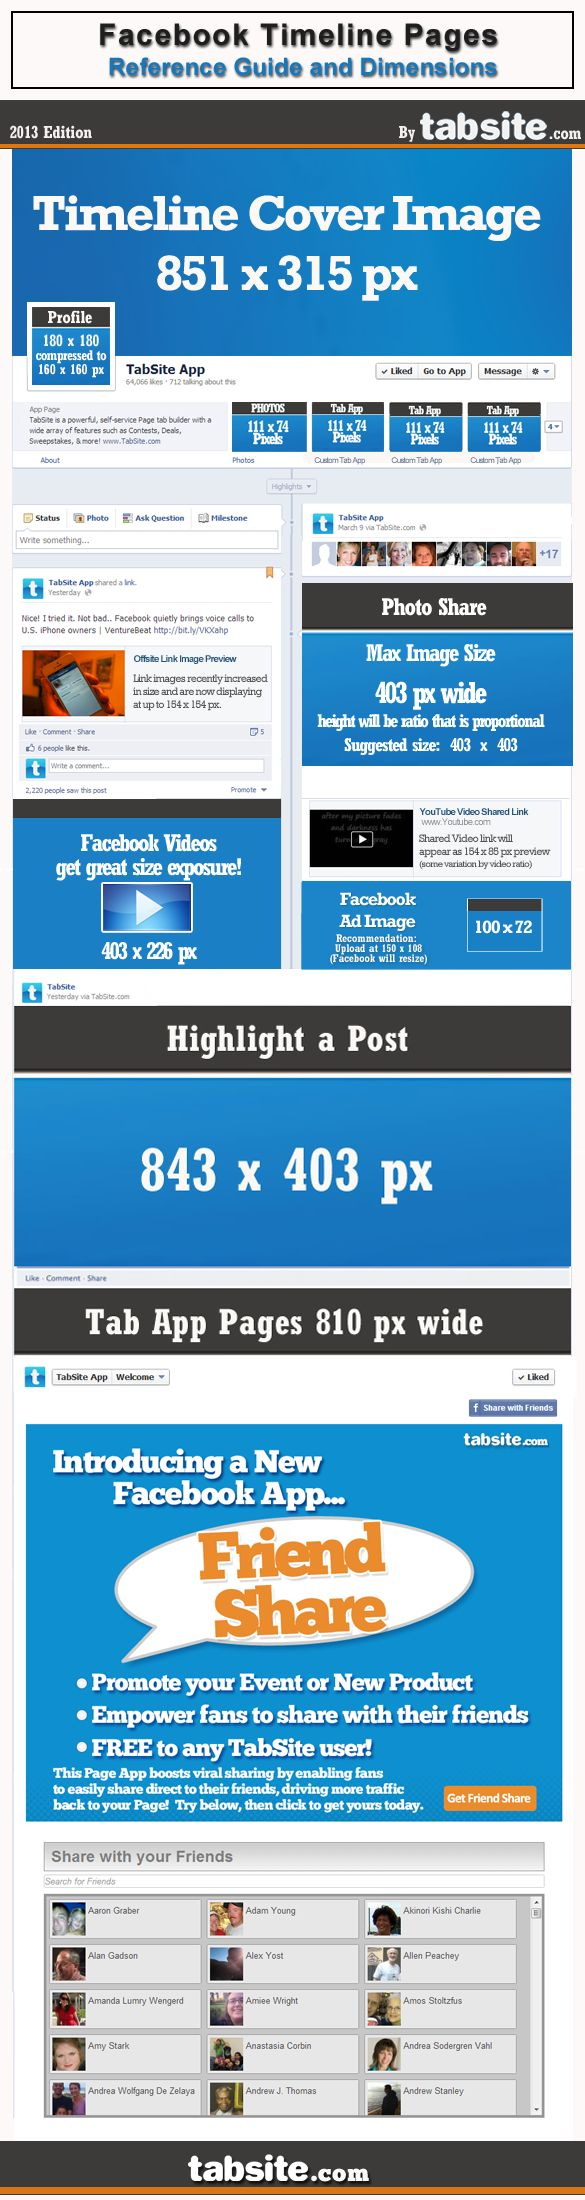 timeline infographic2013 Facebook Timeline Pages Image Dimensions and Guide   Infographic